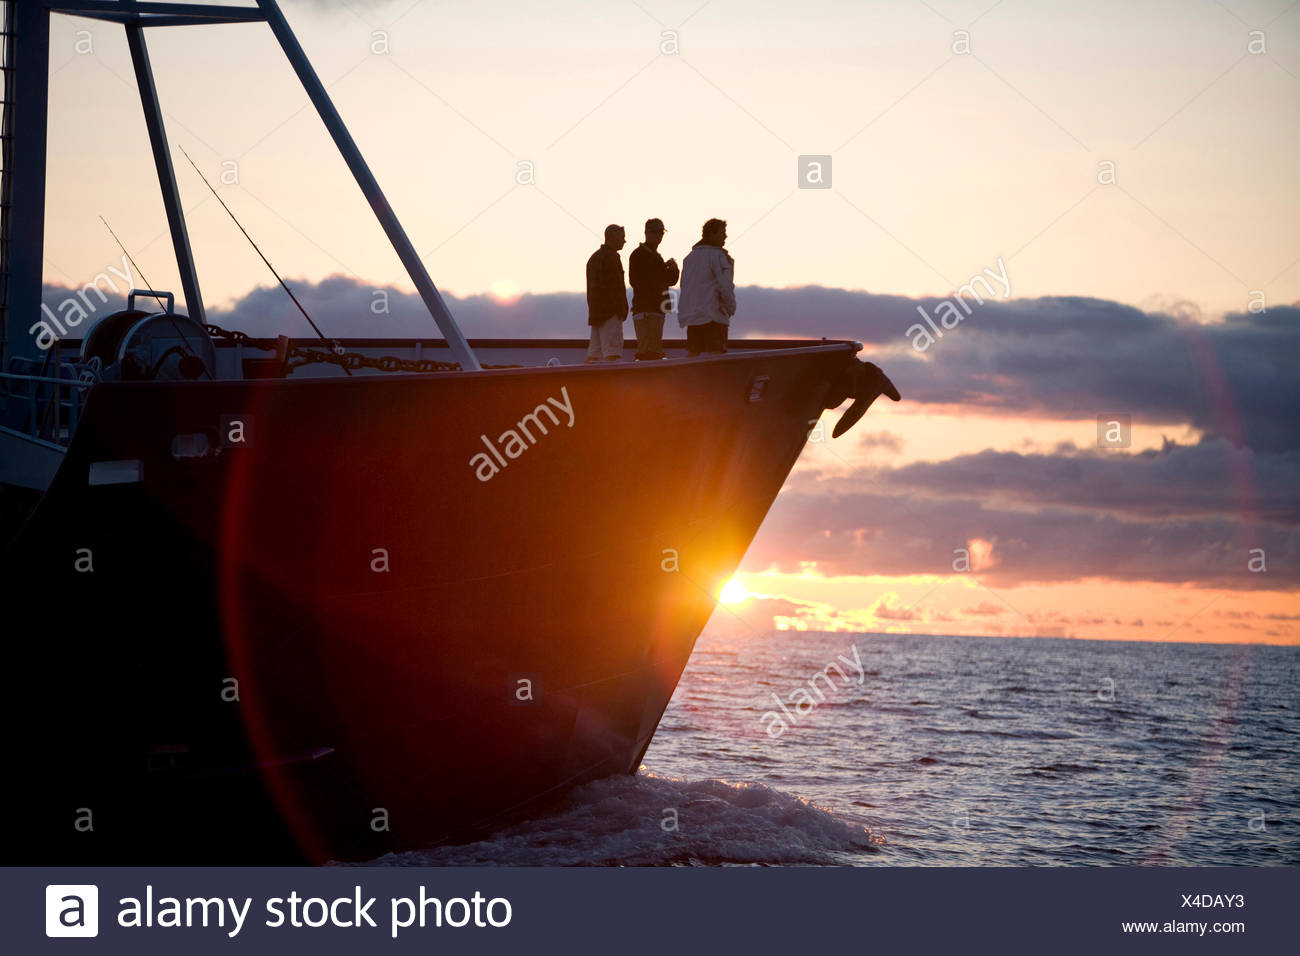 Expedition Boat sillouette. - Stock Image